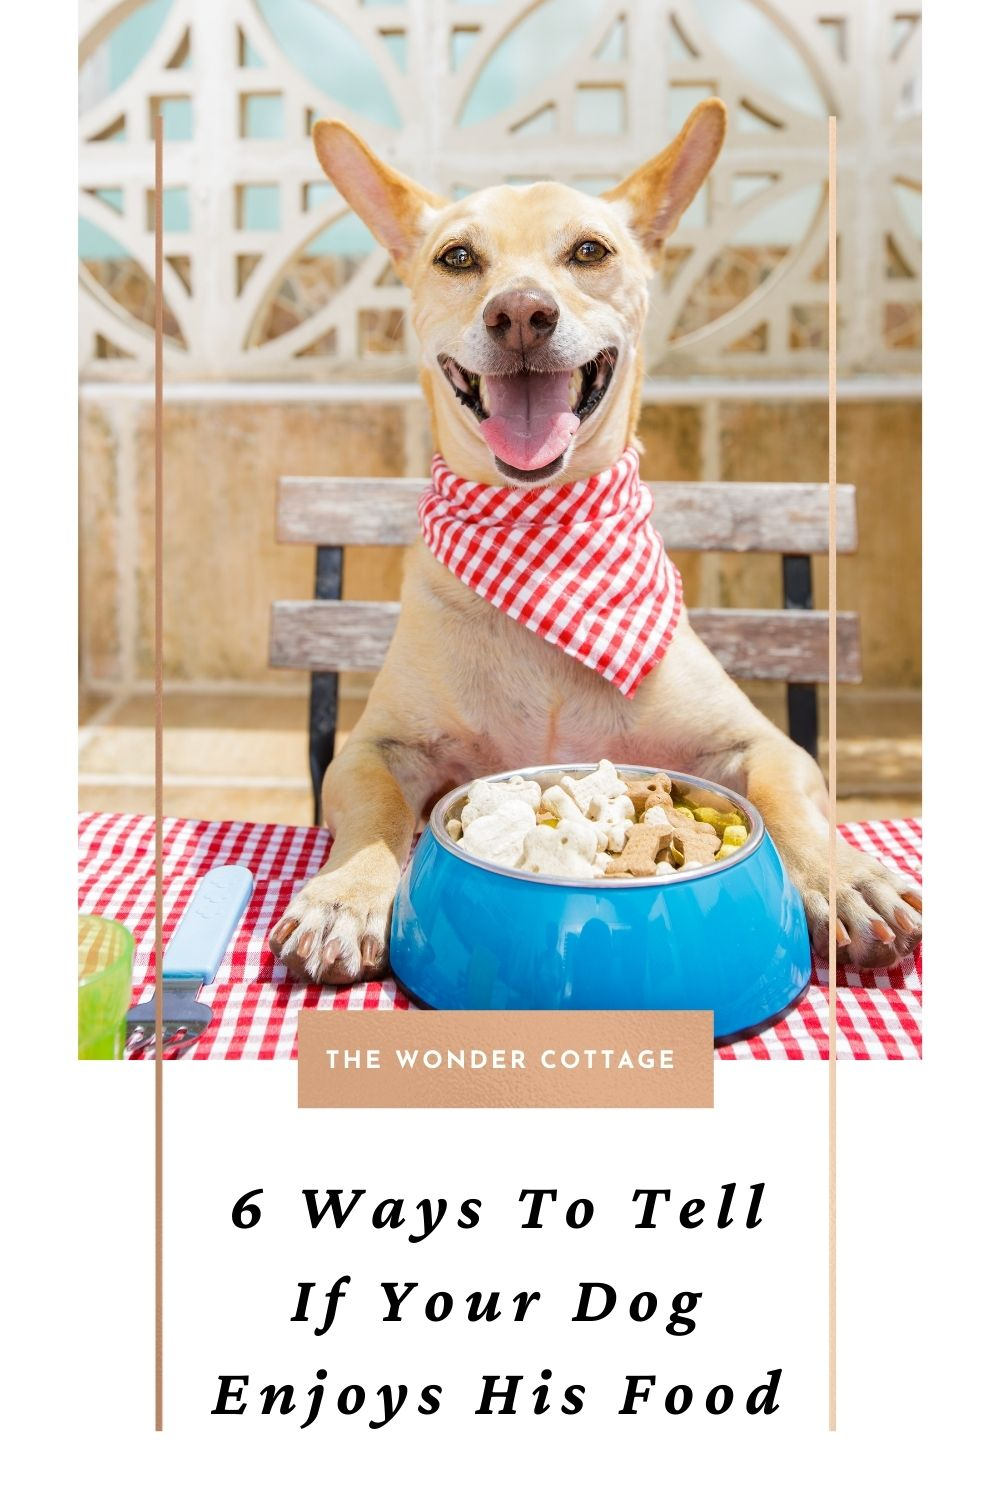 6 ways to tell if your dog enjoys his food